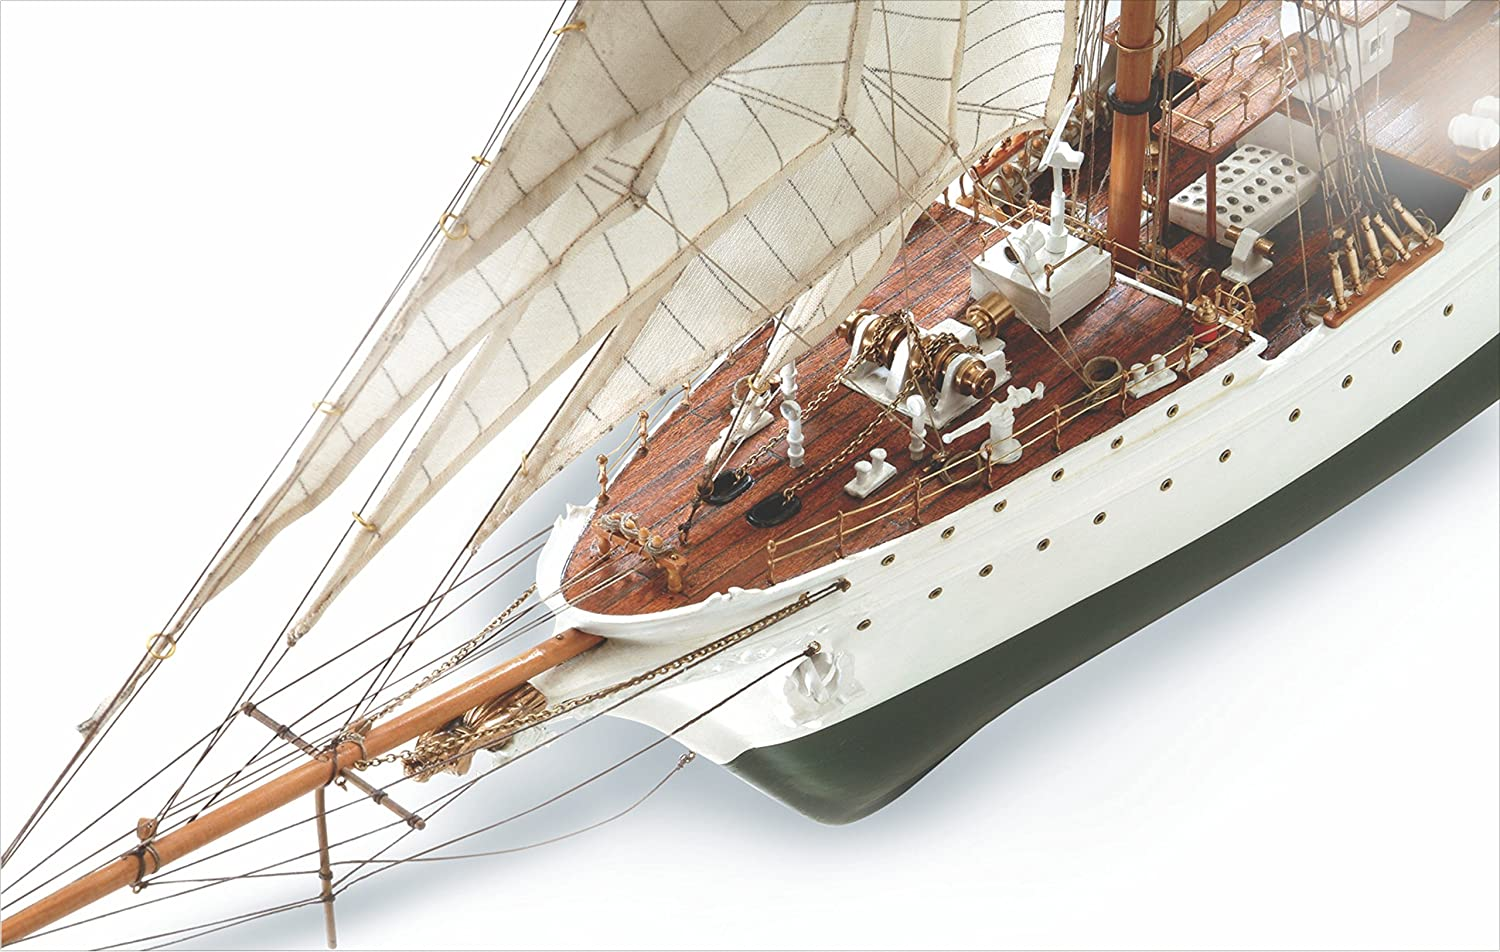 Amazon.com: Juan Sebastian Elcano Wooden Ship Model Kit by ...